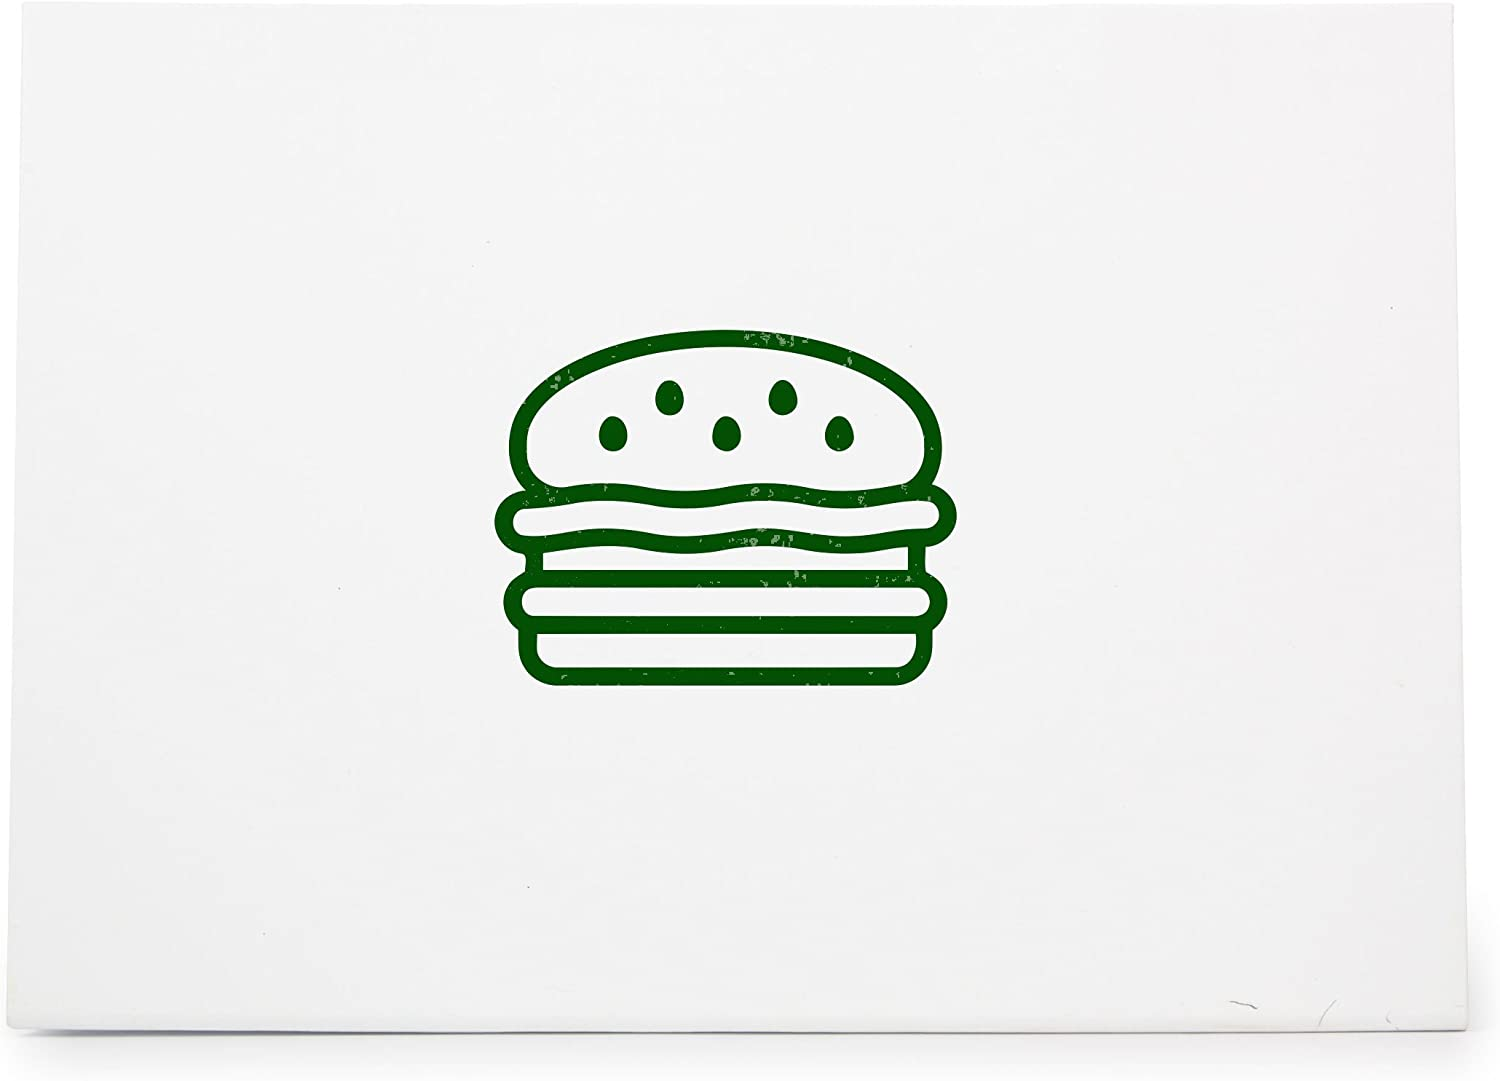 Hamburger Burger Cheeseburger Fast Food Style 7484, Rubber Stamp Shape great for Scrapbooking, Crafts, Card Making, Ink Stamping Crafts